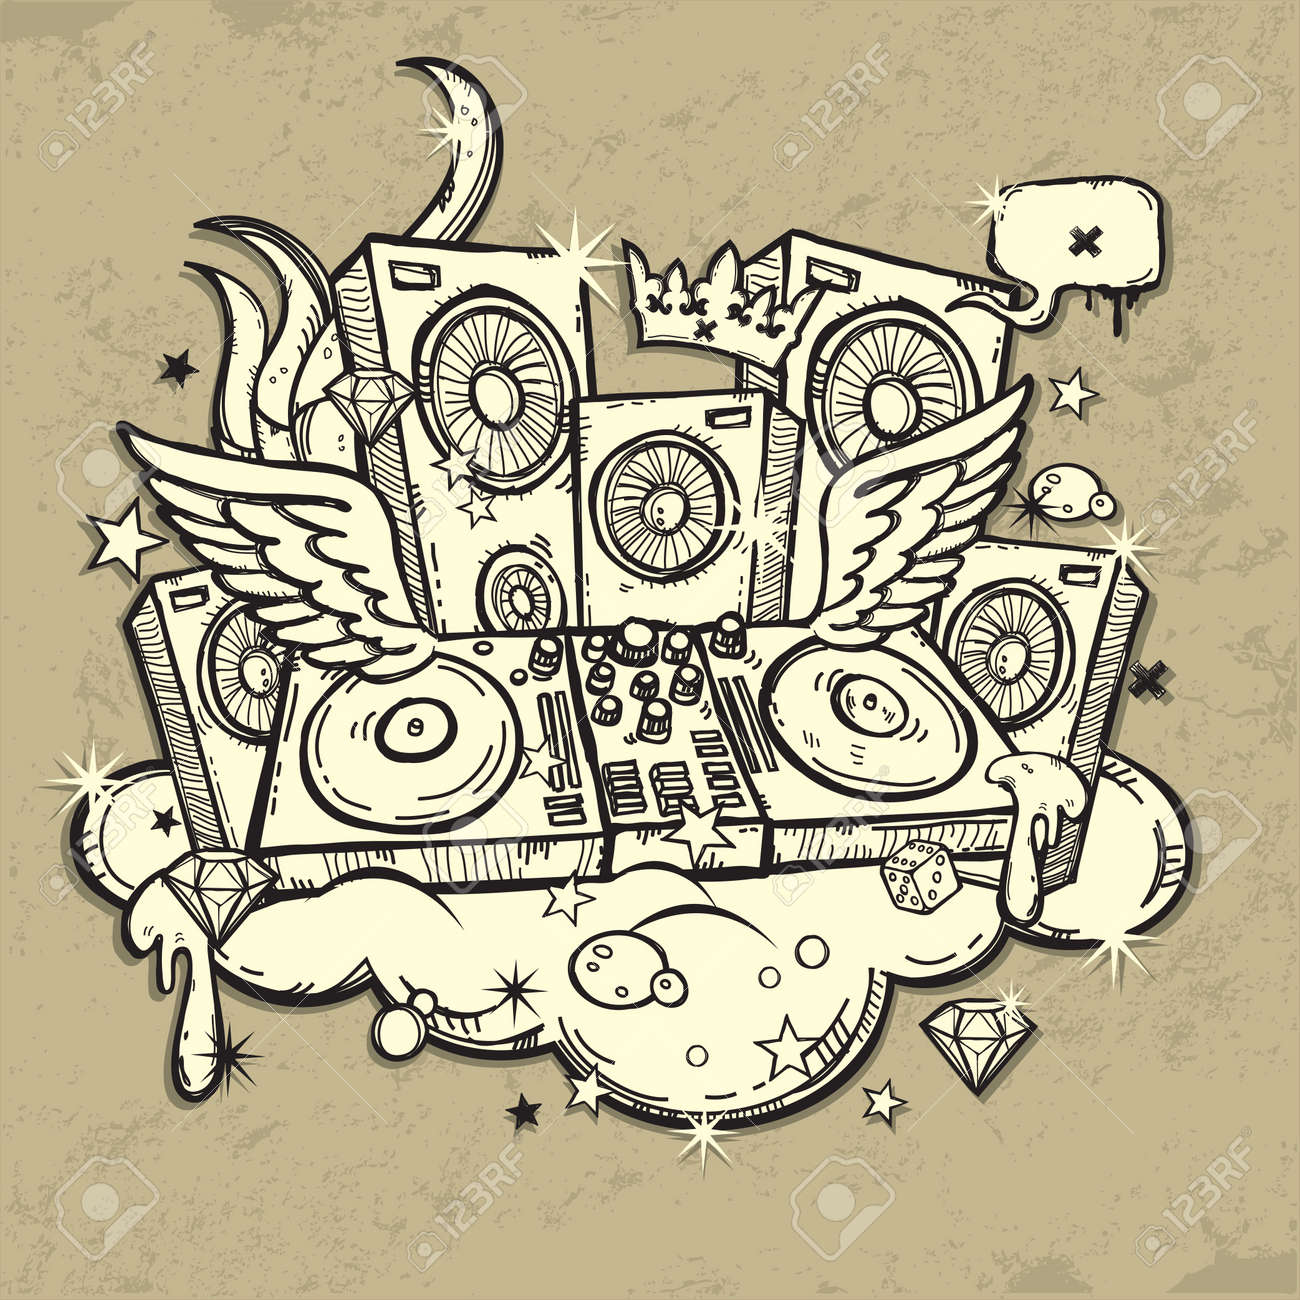 Dj S Spirit Royalty Free Cliparts Vectors And Stock Illustration